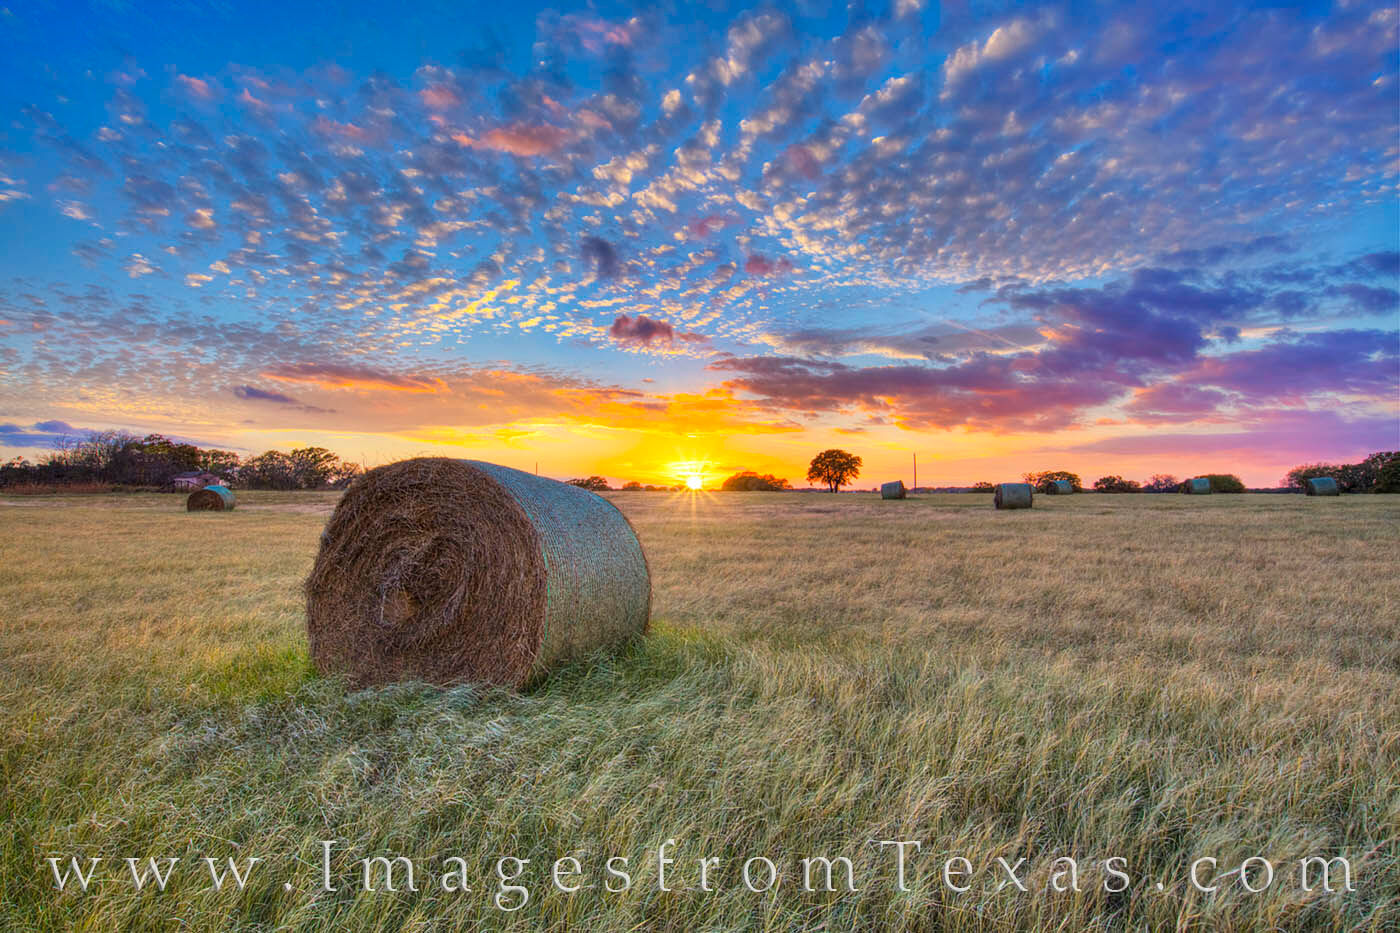 texas hay bales,bales of hay,texas sunset,hay bale images,texas landscapes, photo